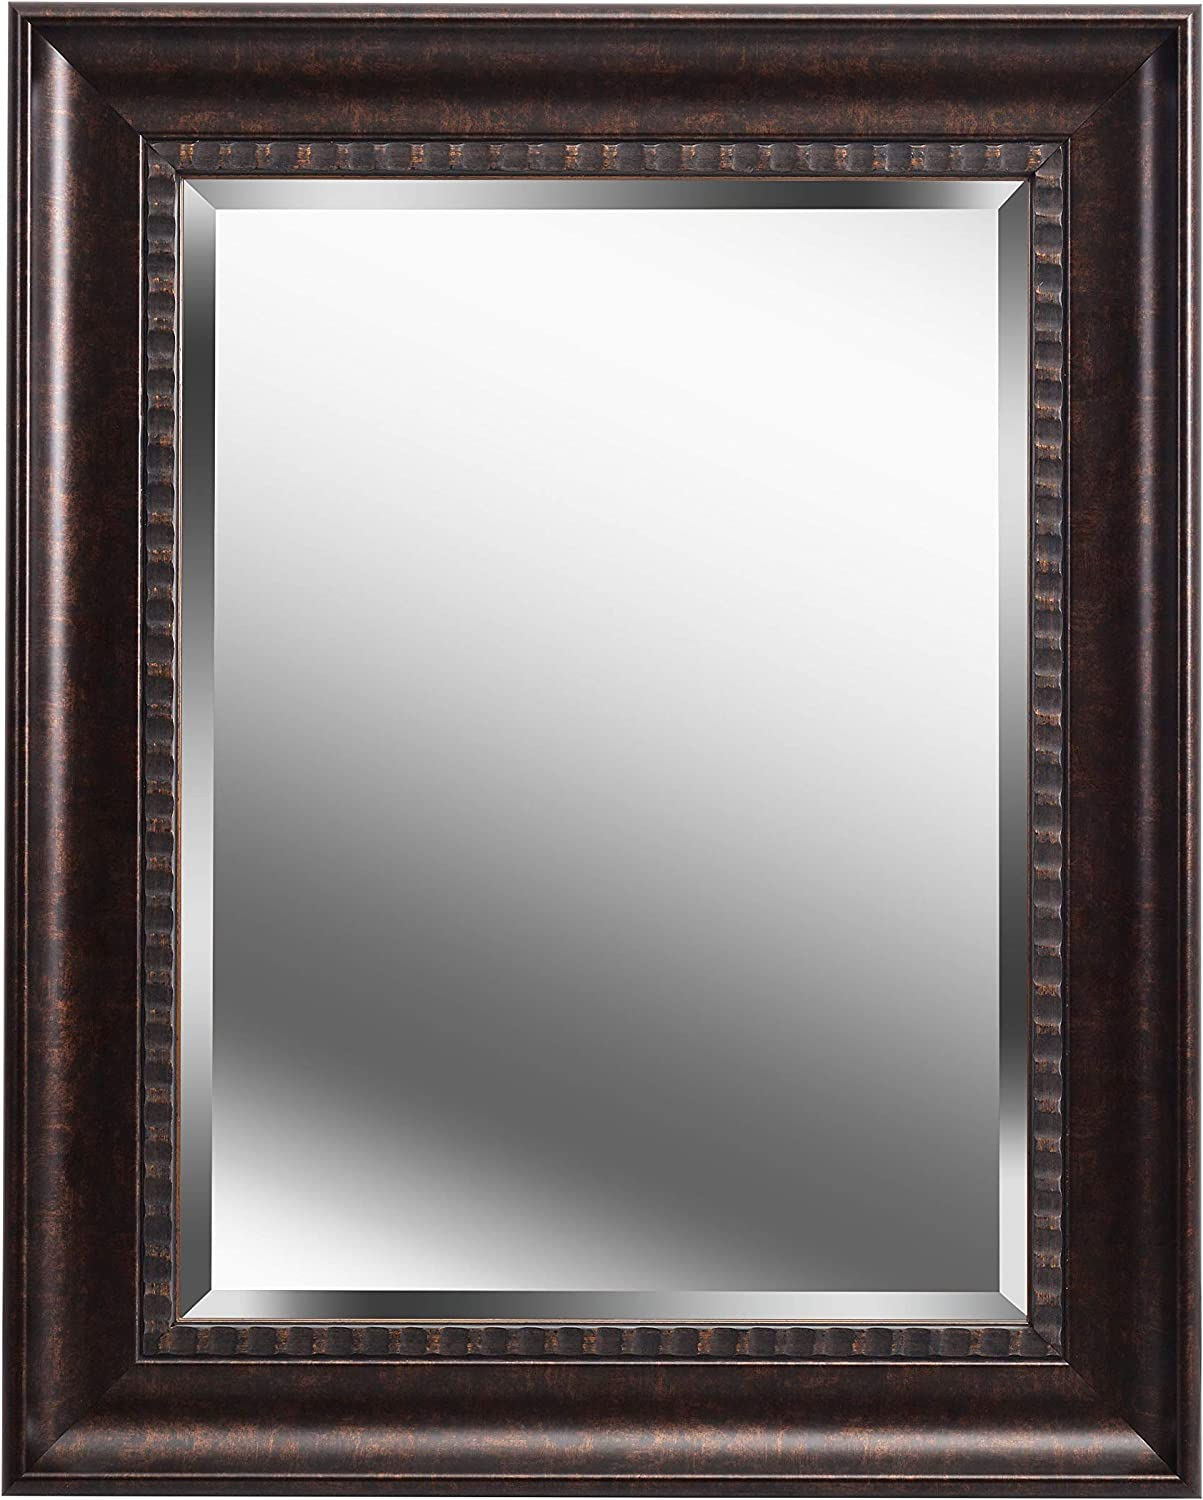 Kenroy Home 60326GB Amiens Mirrors, 24 Inch, Bronze with Gold Highlight